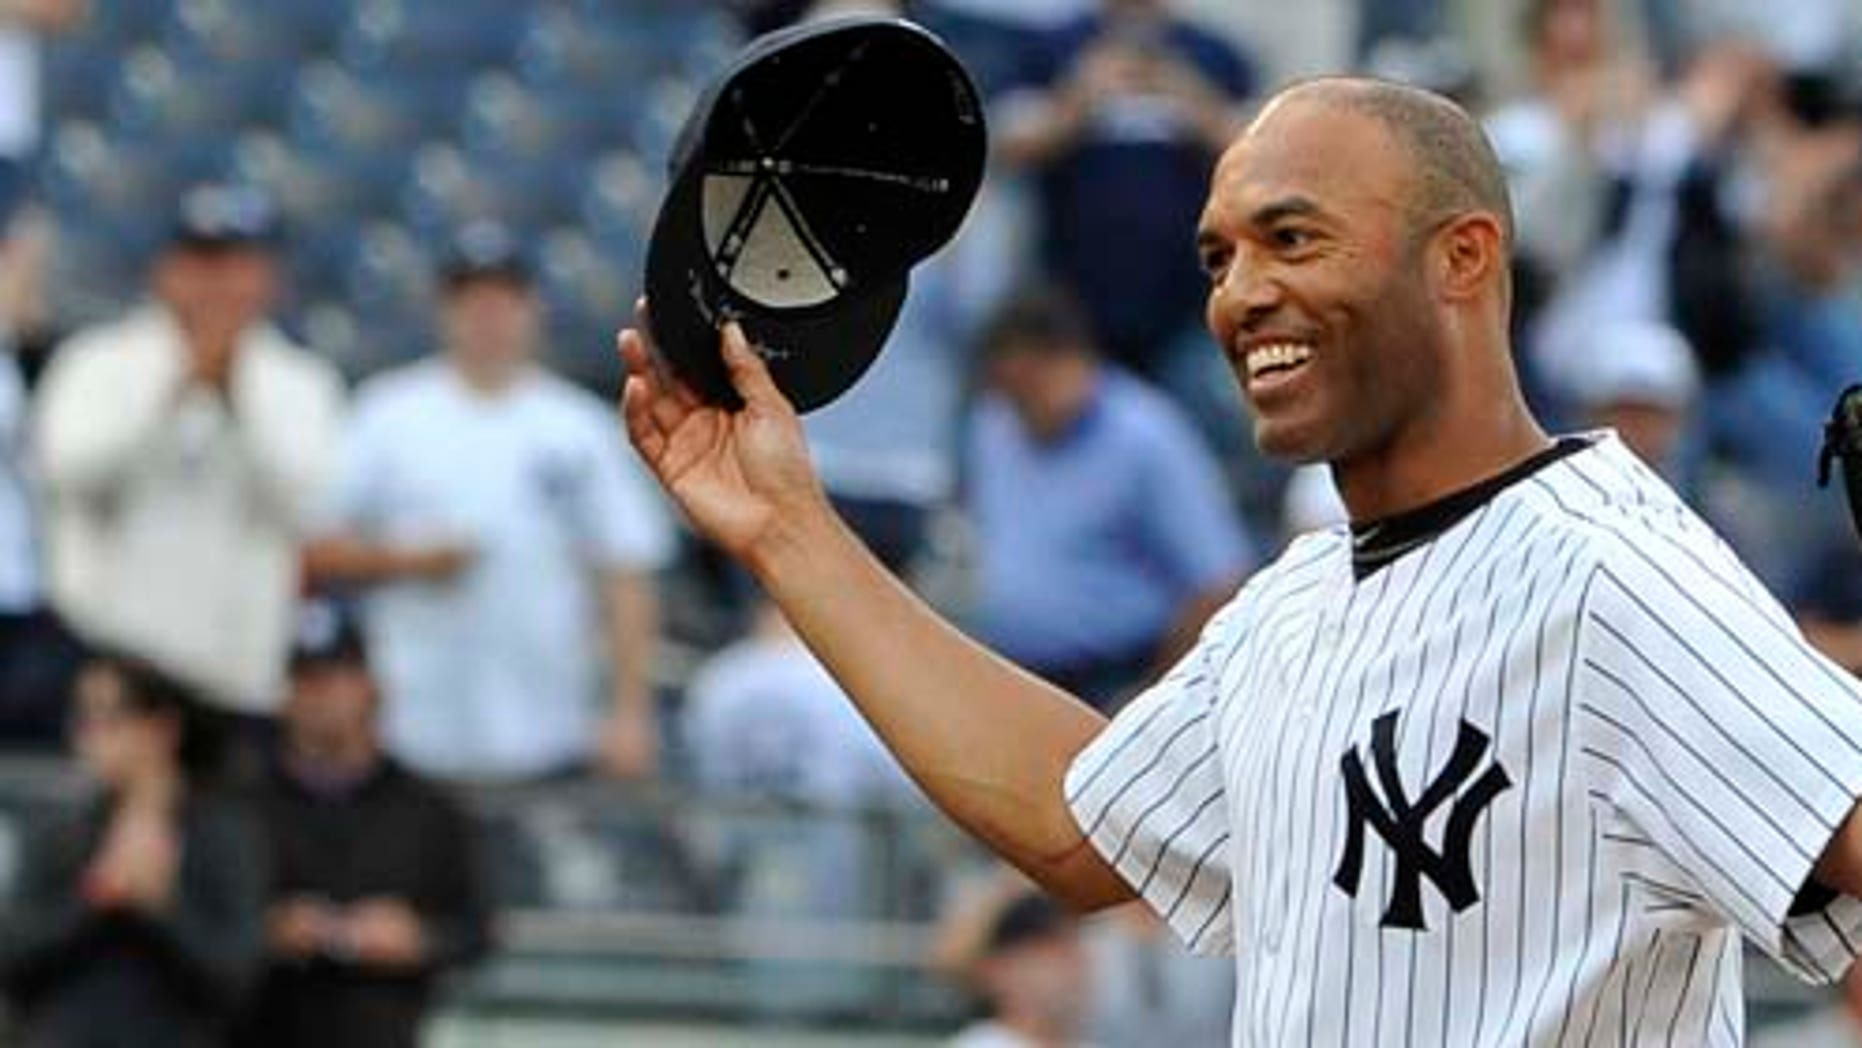 New York Yankees closer Mariano Rivera acknowledges the cheers of the crowd after recording his 602nd career save, after the Yankees beat the Minnesota Twins 6-4 in a baseball game, Monday, Sept. 19, 2011, at Yankee Stadium in New York. Rivera pitched a perfect ninth as he broke the record held by Trevor Hoffman. (AP Photo/Kathy Kmonicek)